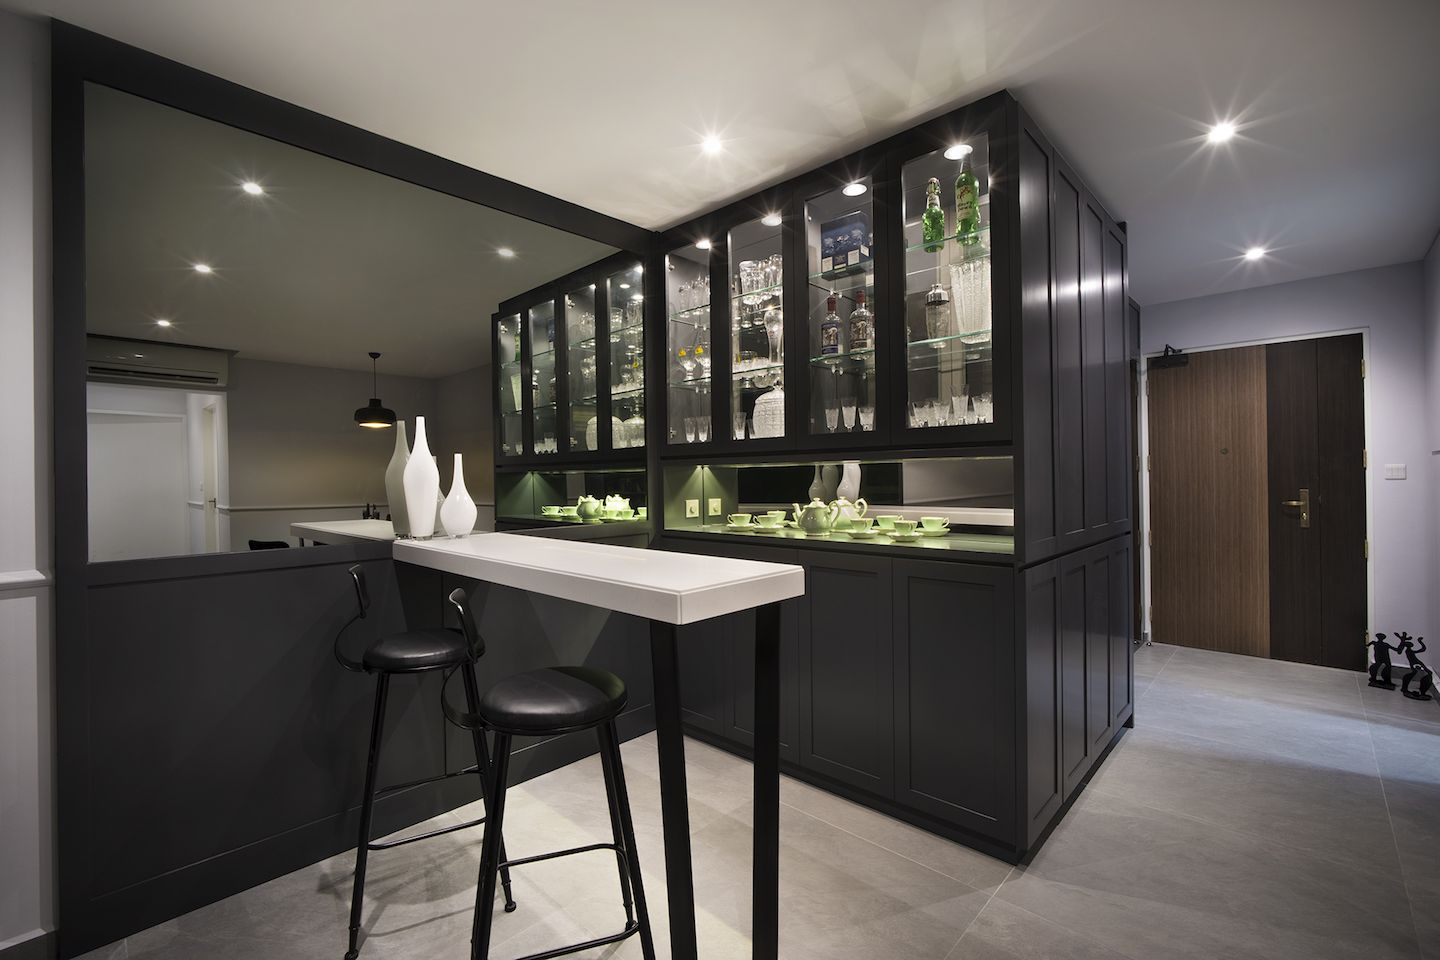 The Bar Area Glistens Just Off The Entrance, With A Custom Designed, Dark  Timber And Glass Fronted Display Cabinet. The Bar Area Is Completed With A  ...